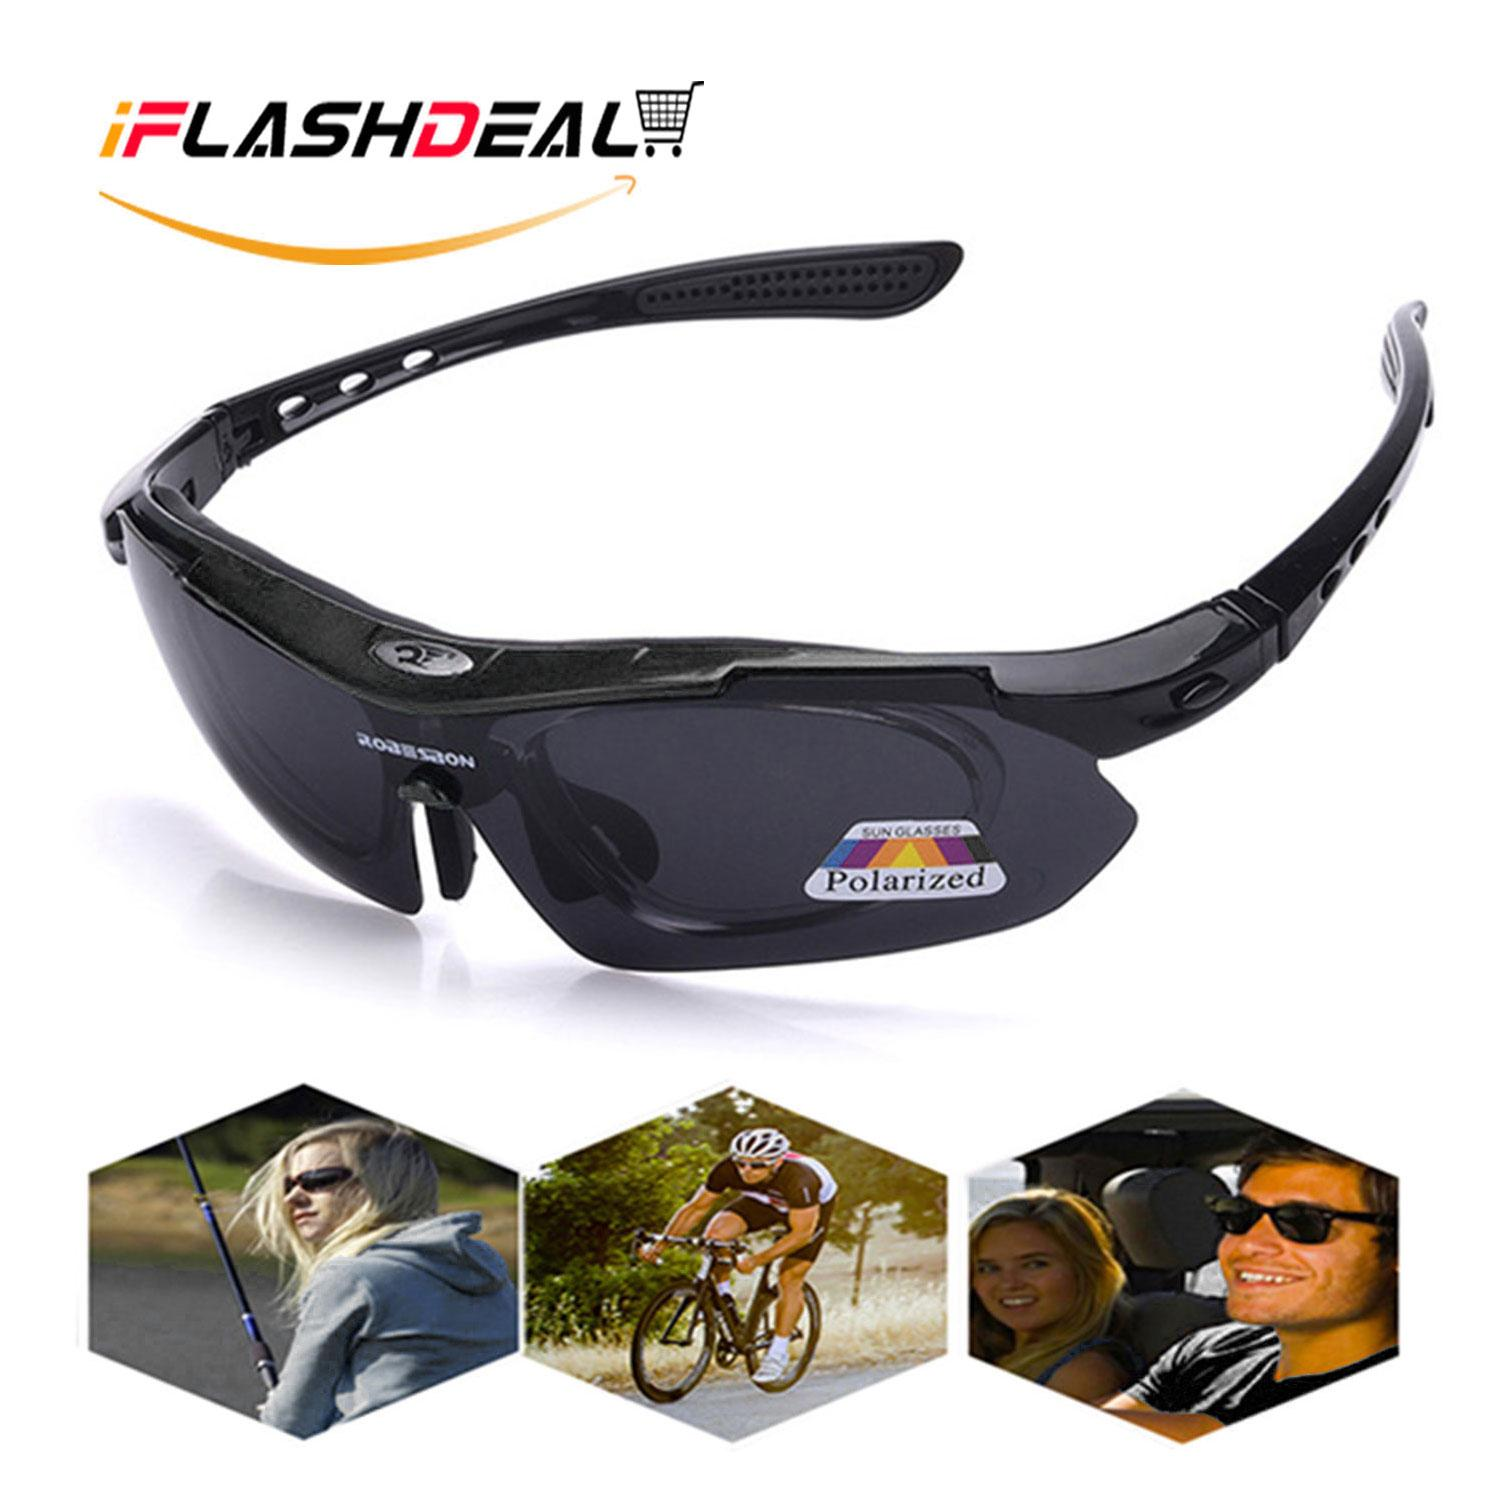 Iflashdeal Men Sports Sunglasses Polarized Outdoor Sport Driving Male Women Sun Glasses Cycling Riding Running Glasses By Iflashdeal.